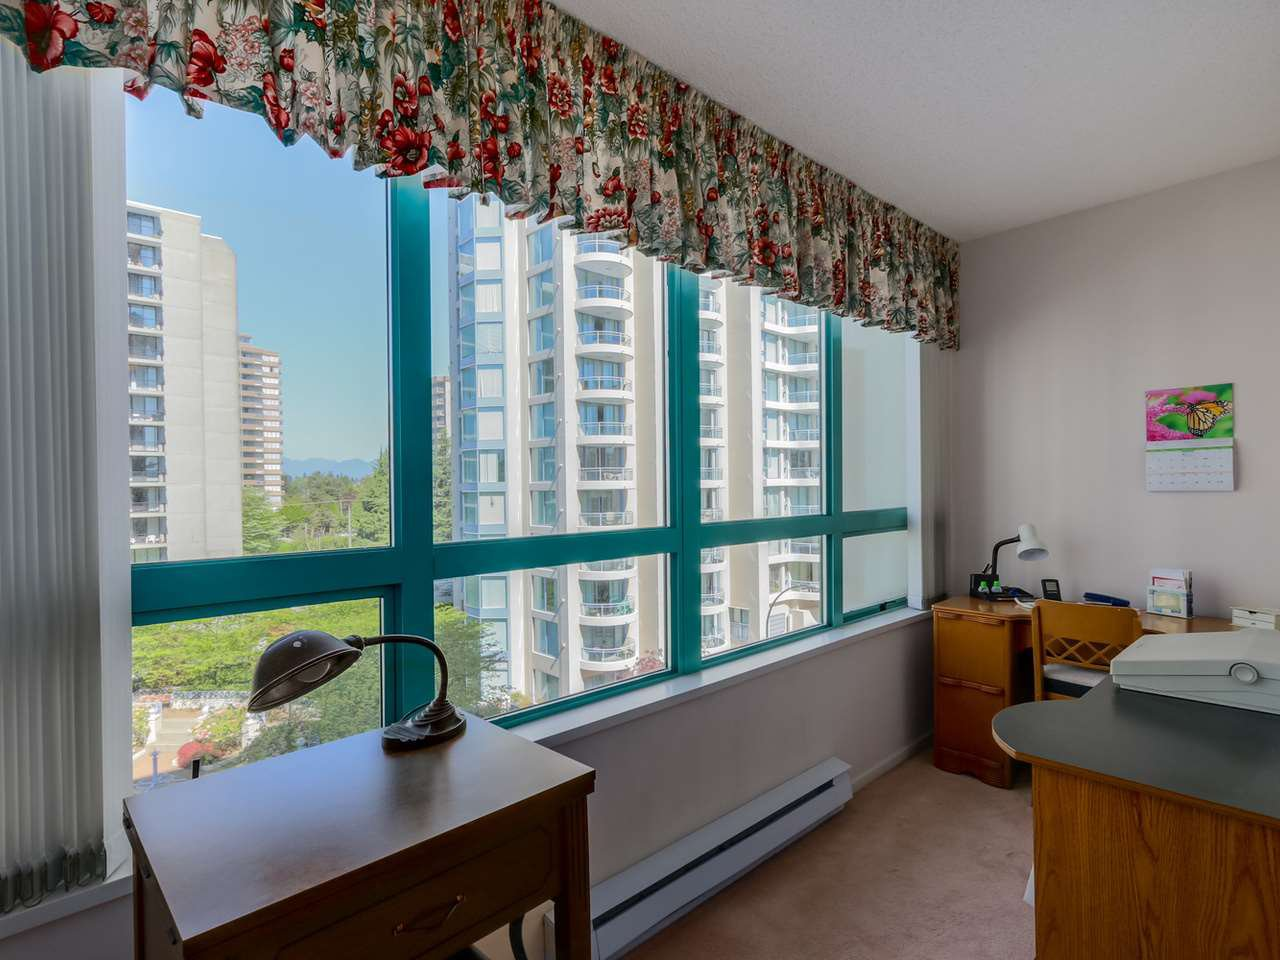 Photo 8: Photos: 403 728 PRINCESS Street in New Westminster: Uptown NW Condo for sale : MLS®# R2061685